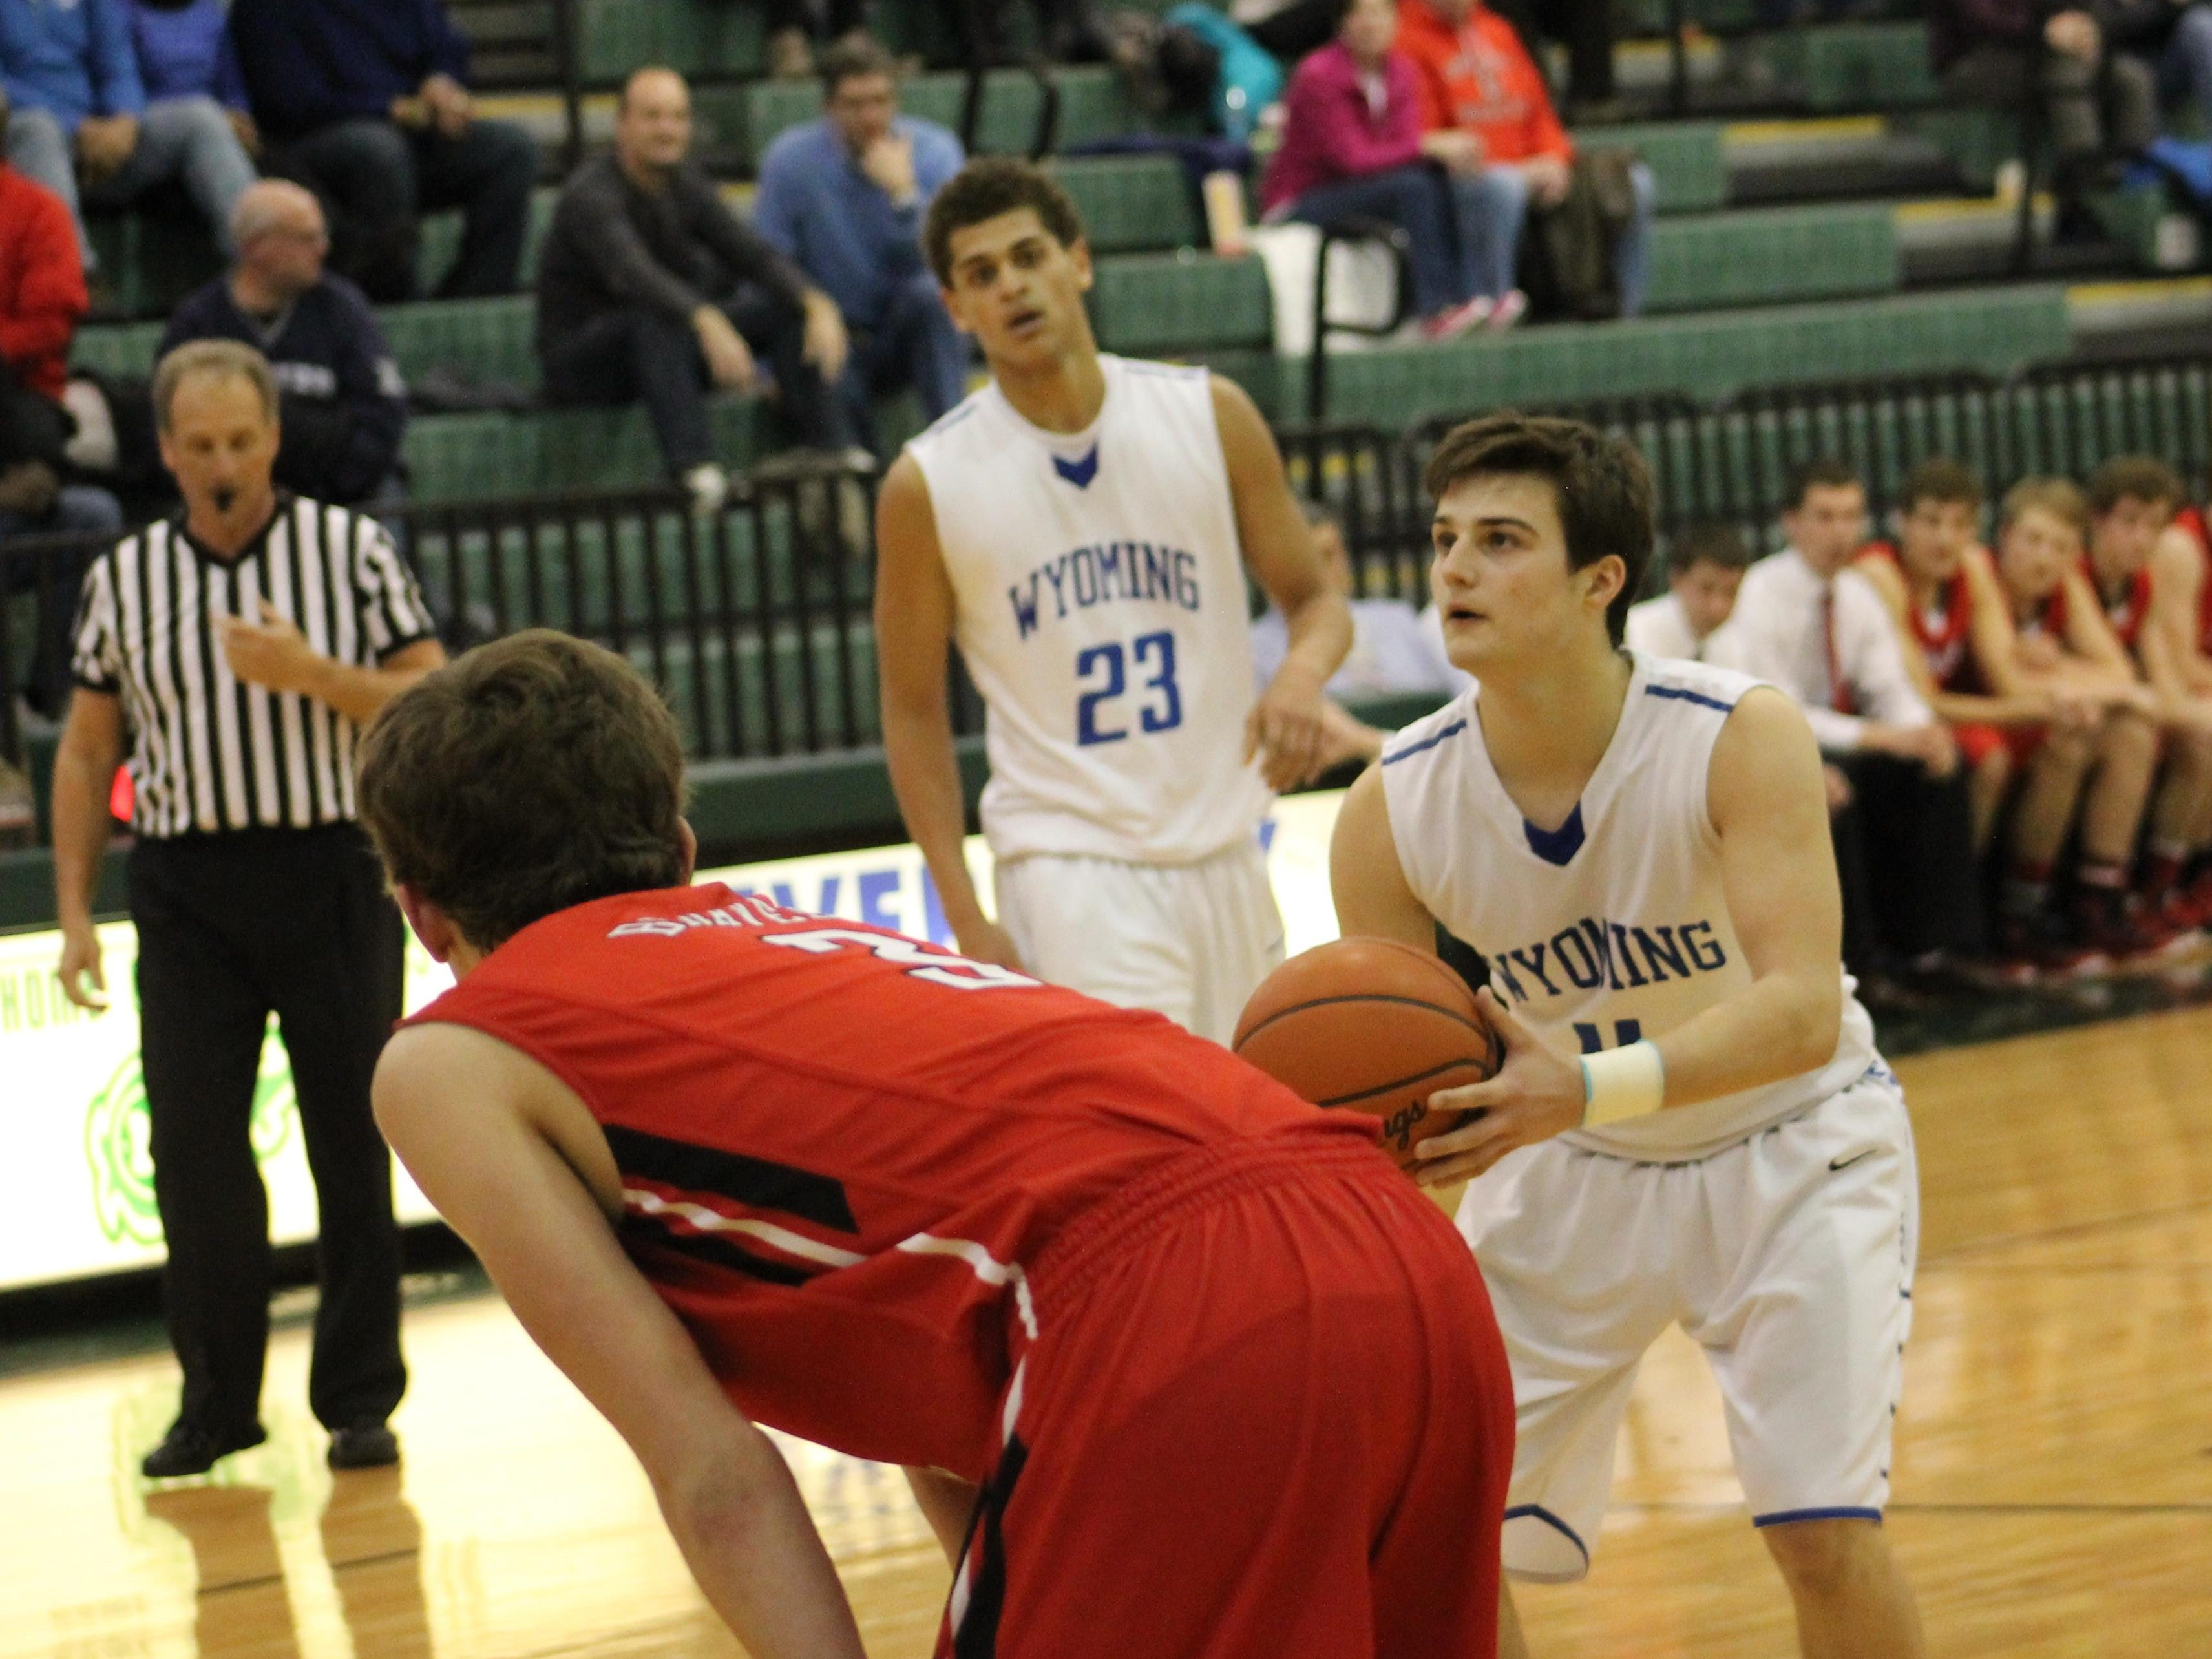 Wyoming's Jake Edmonds eyes the basket from the charity stripe last March as Garyn Prater (23) looks on.